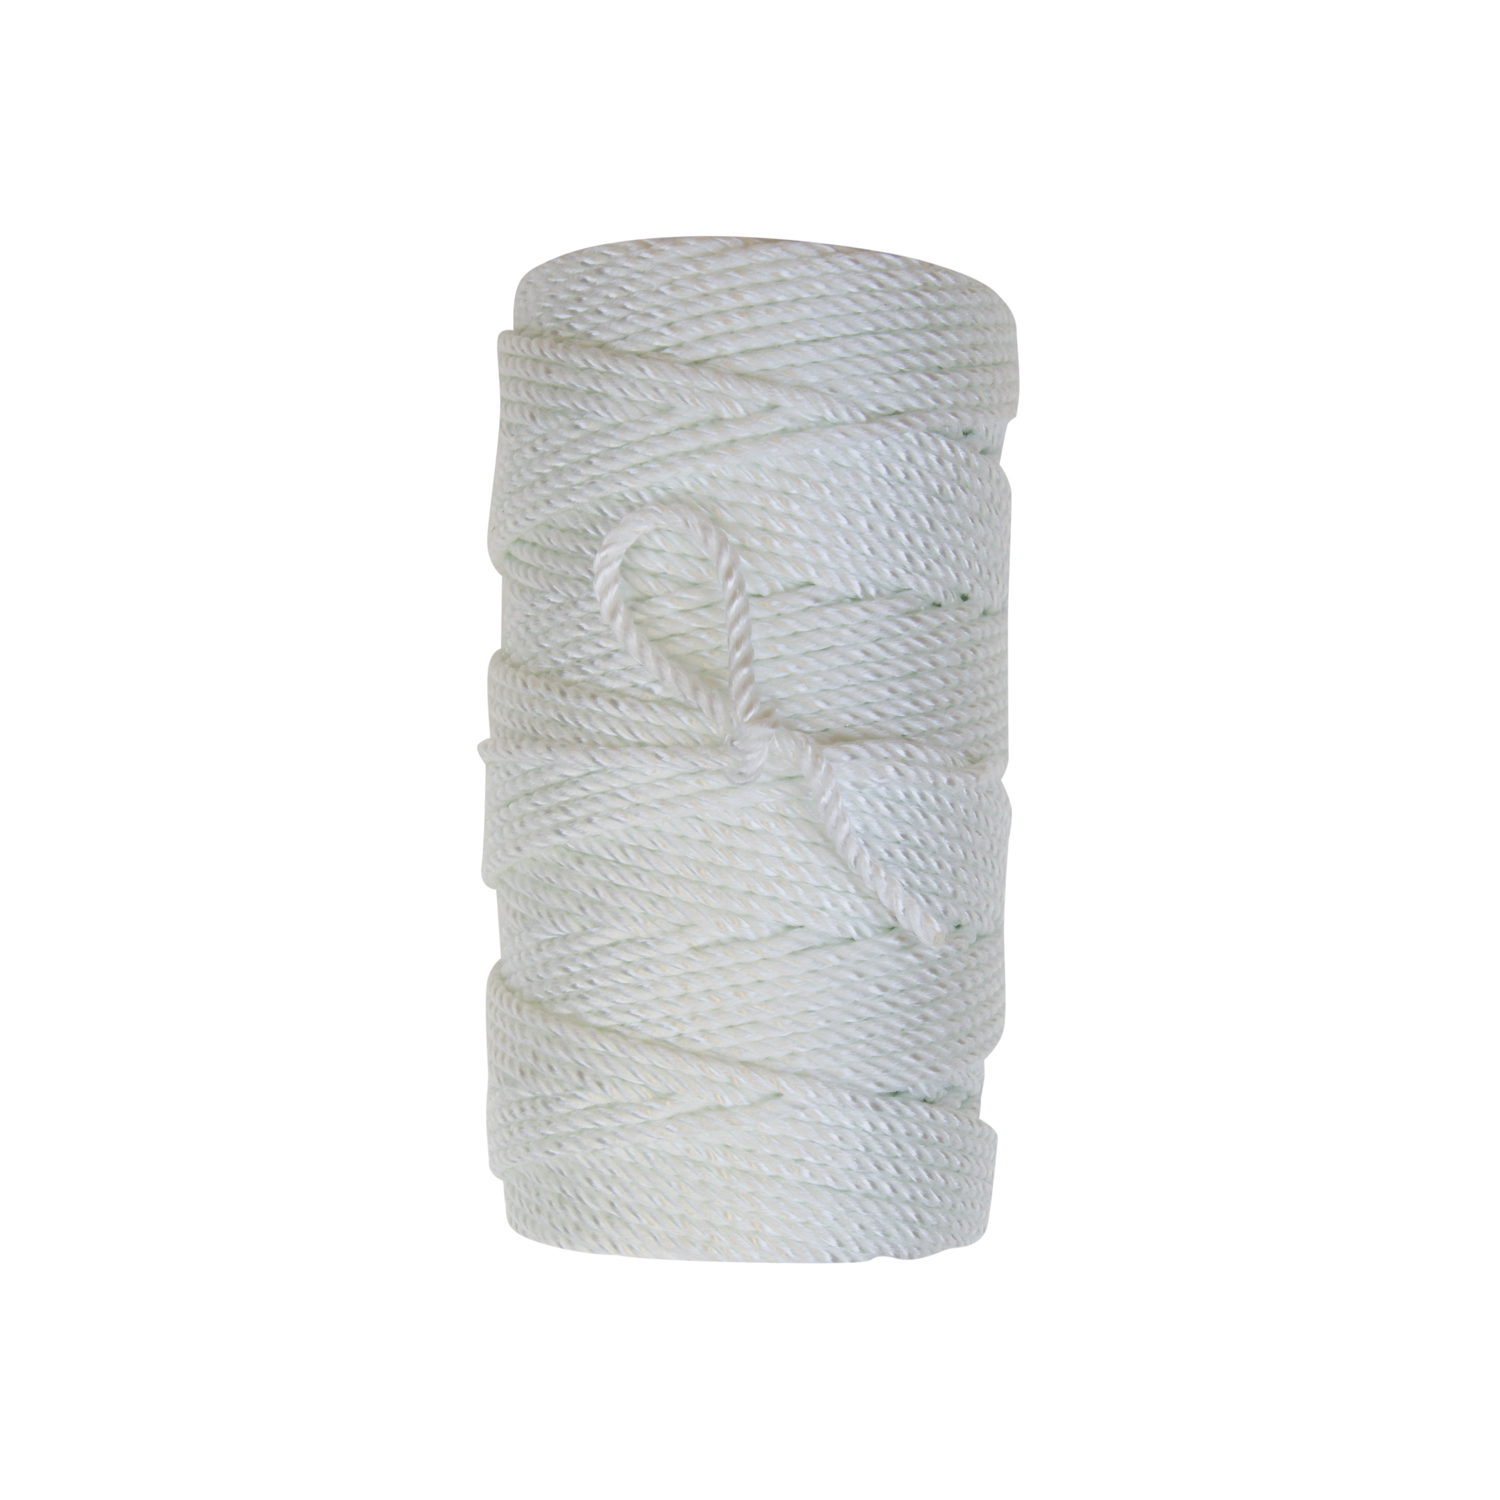 Evergrip Twine - This three strand twisted twine is produced using 100% industrial nylon with special textured fibers to provide enhanced grip for knot set and adhesion. Can be dyed green. Dyed twines are locally dyed, linear processed, and dried in gas fired ovens.